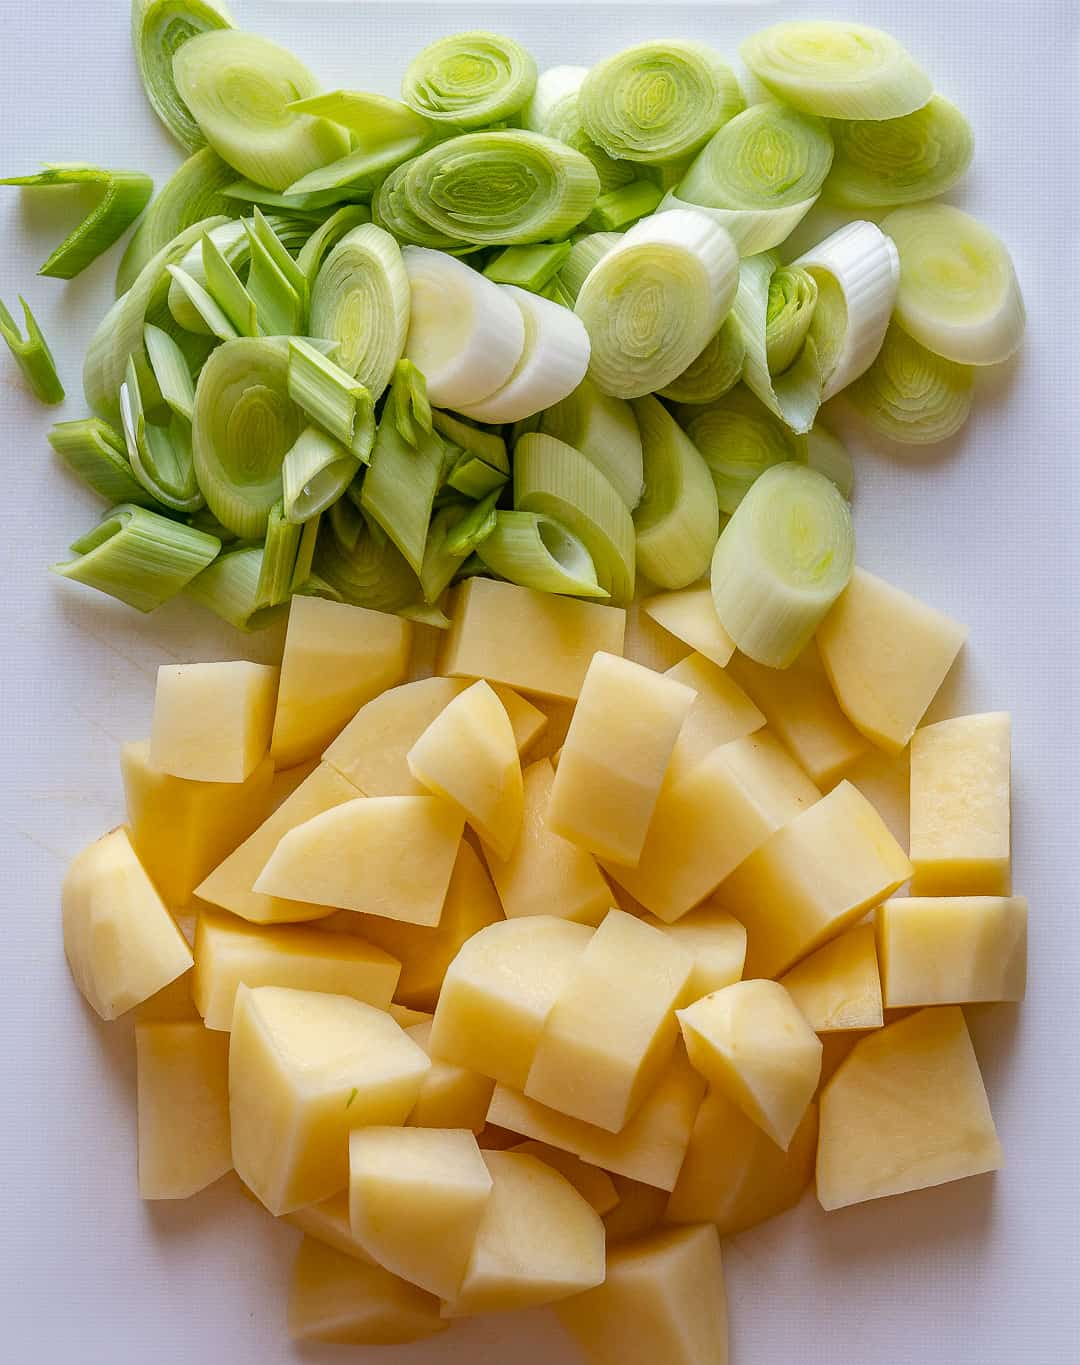 Chopped leeks and potatoes on a cutting board